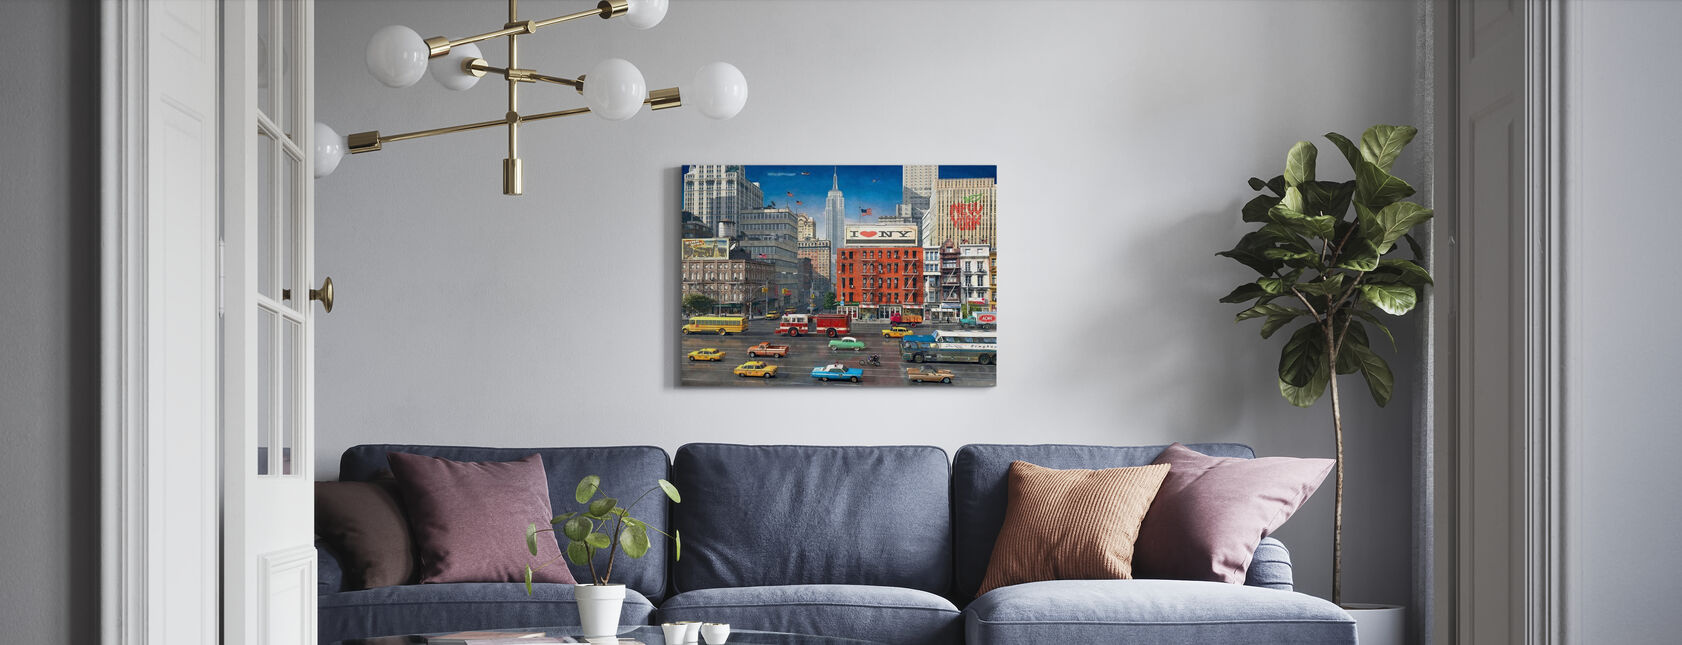 Streets of NYC - Canvas print - Living Room